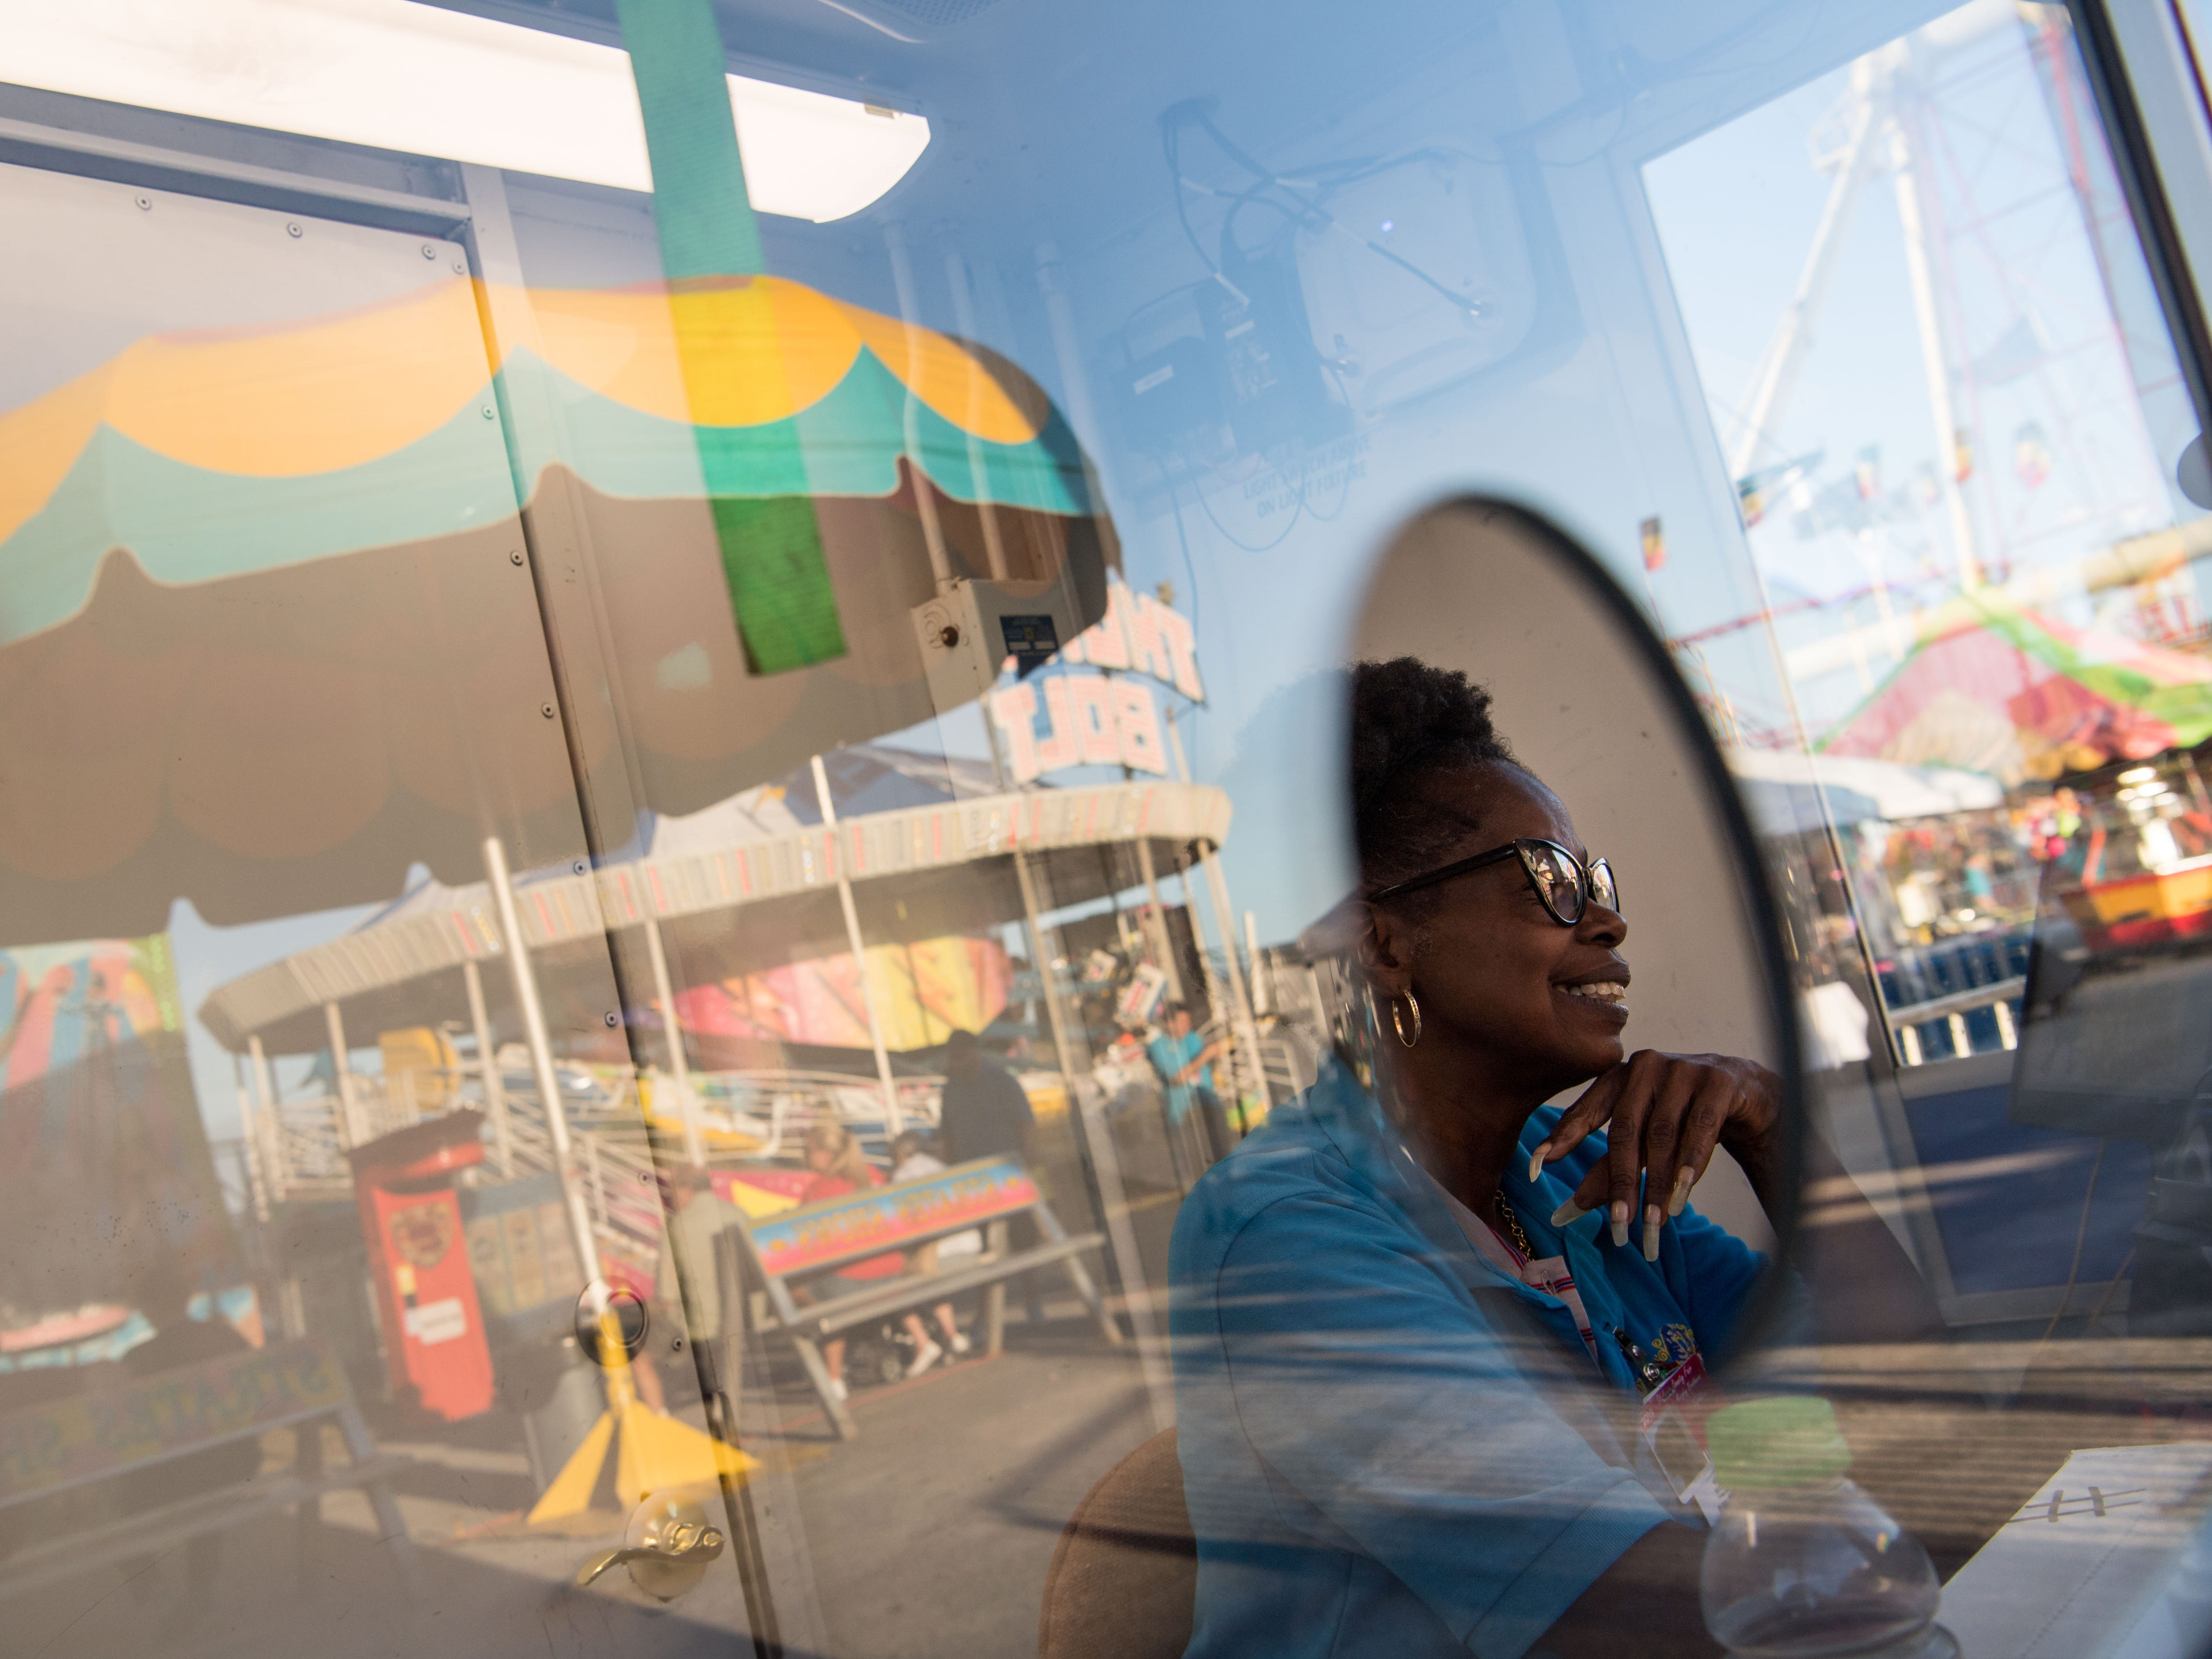 Strates Shows employee Helen Brooks, of Fort Pierce, enjoys music from nearby rides as she works behind the window at a tickets booth at the 54th annual St. Lucie County Fair on opening night Friday, Feb. 22, 2019, in Fort Pierce.